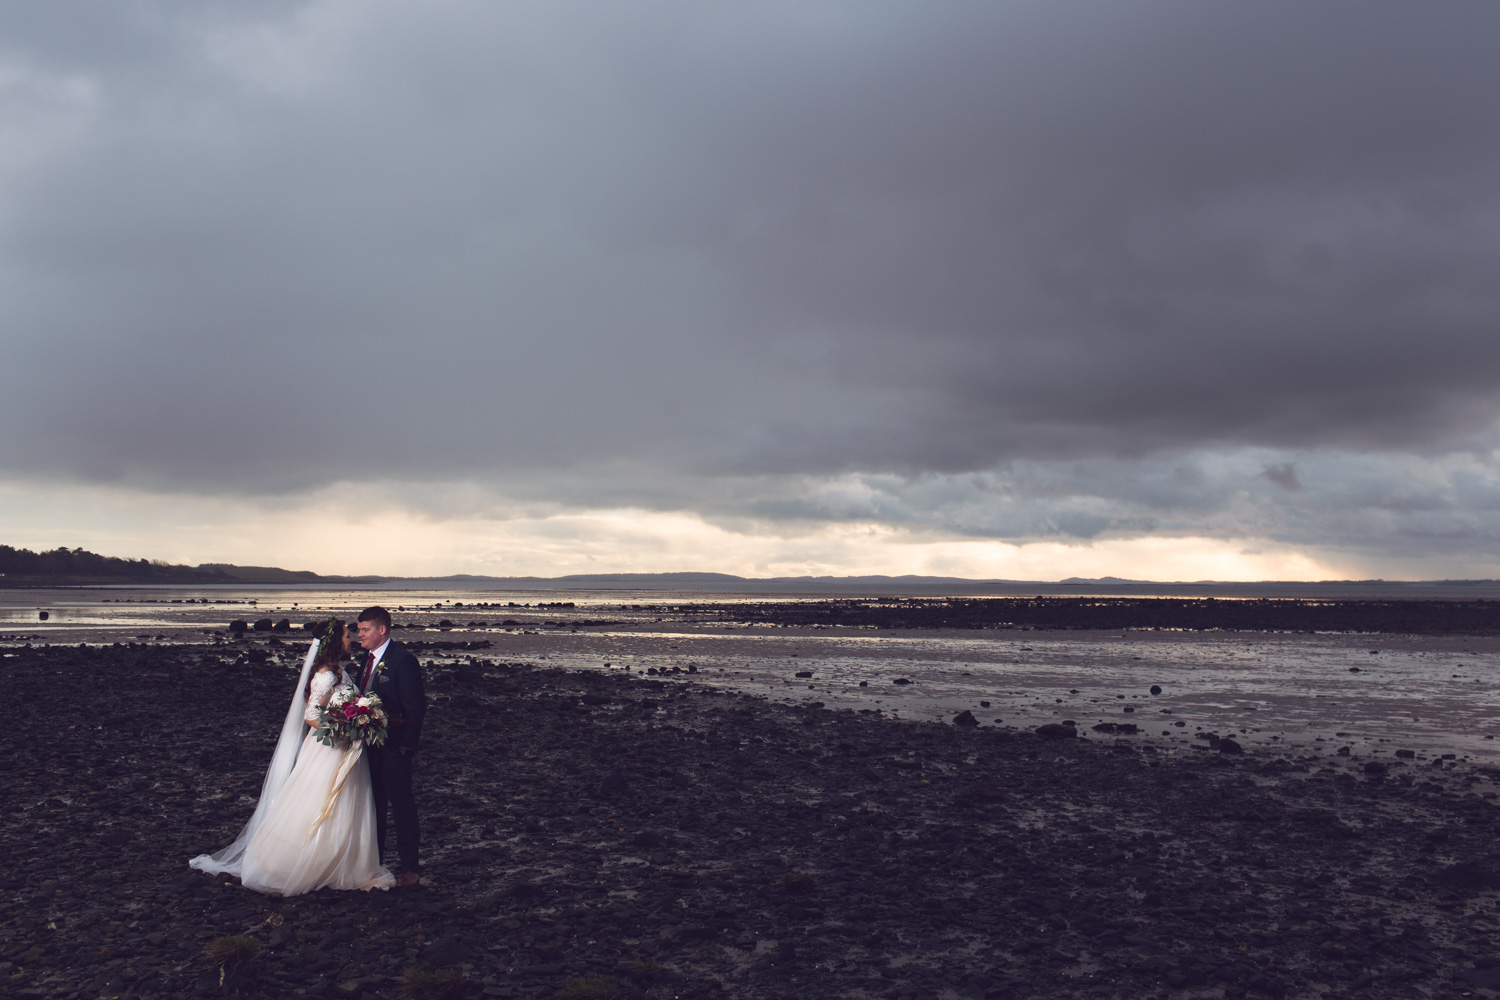 Mark_Barnes_wedding_photographer_Northern_Ireland_Wedding_photography_Orange_Tree_House_Greyabbey_Wedding_photography-44.jpg